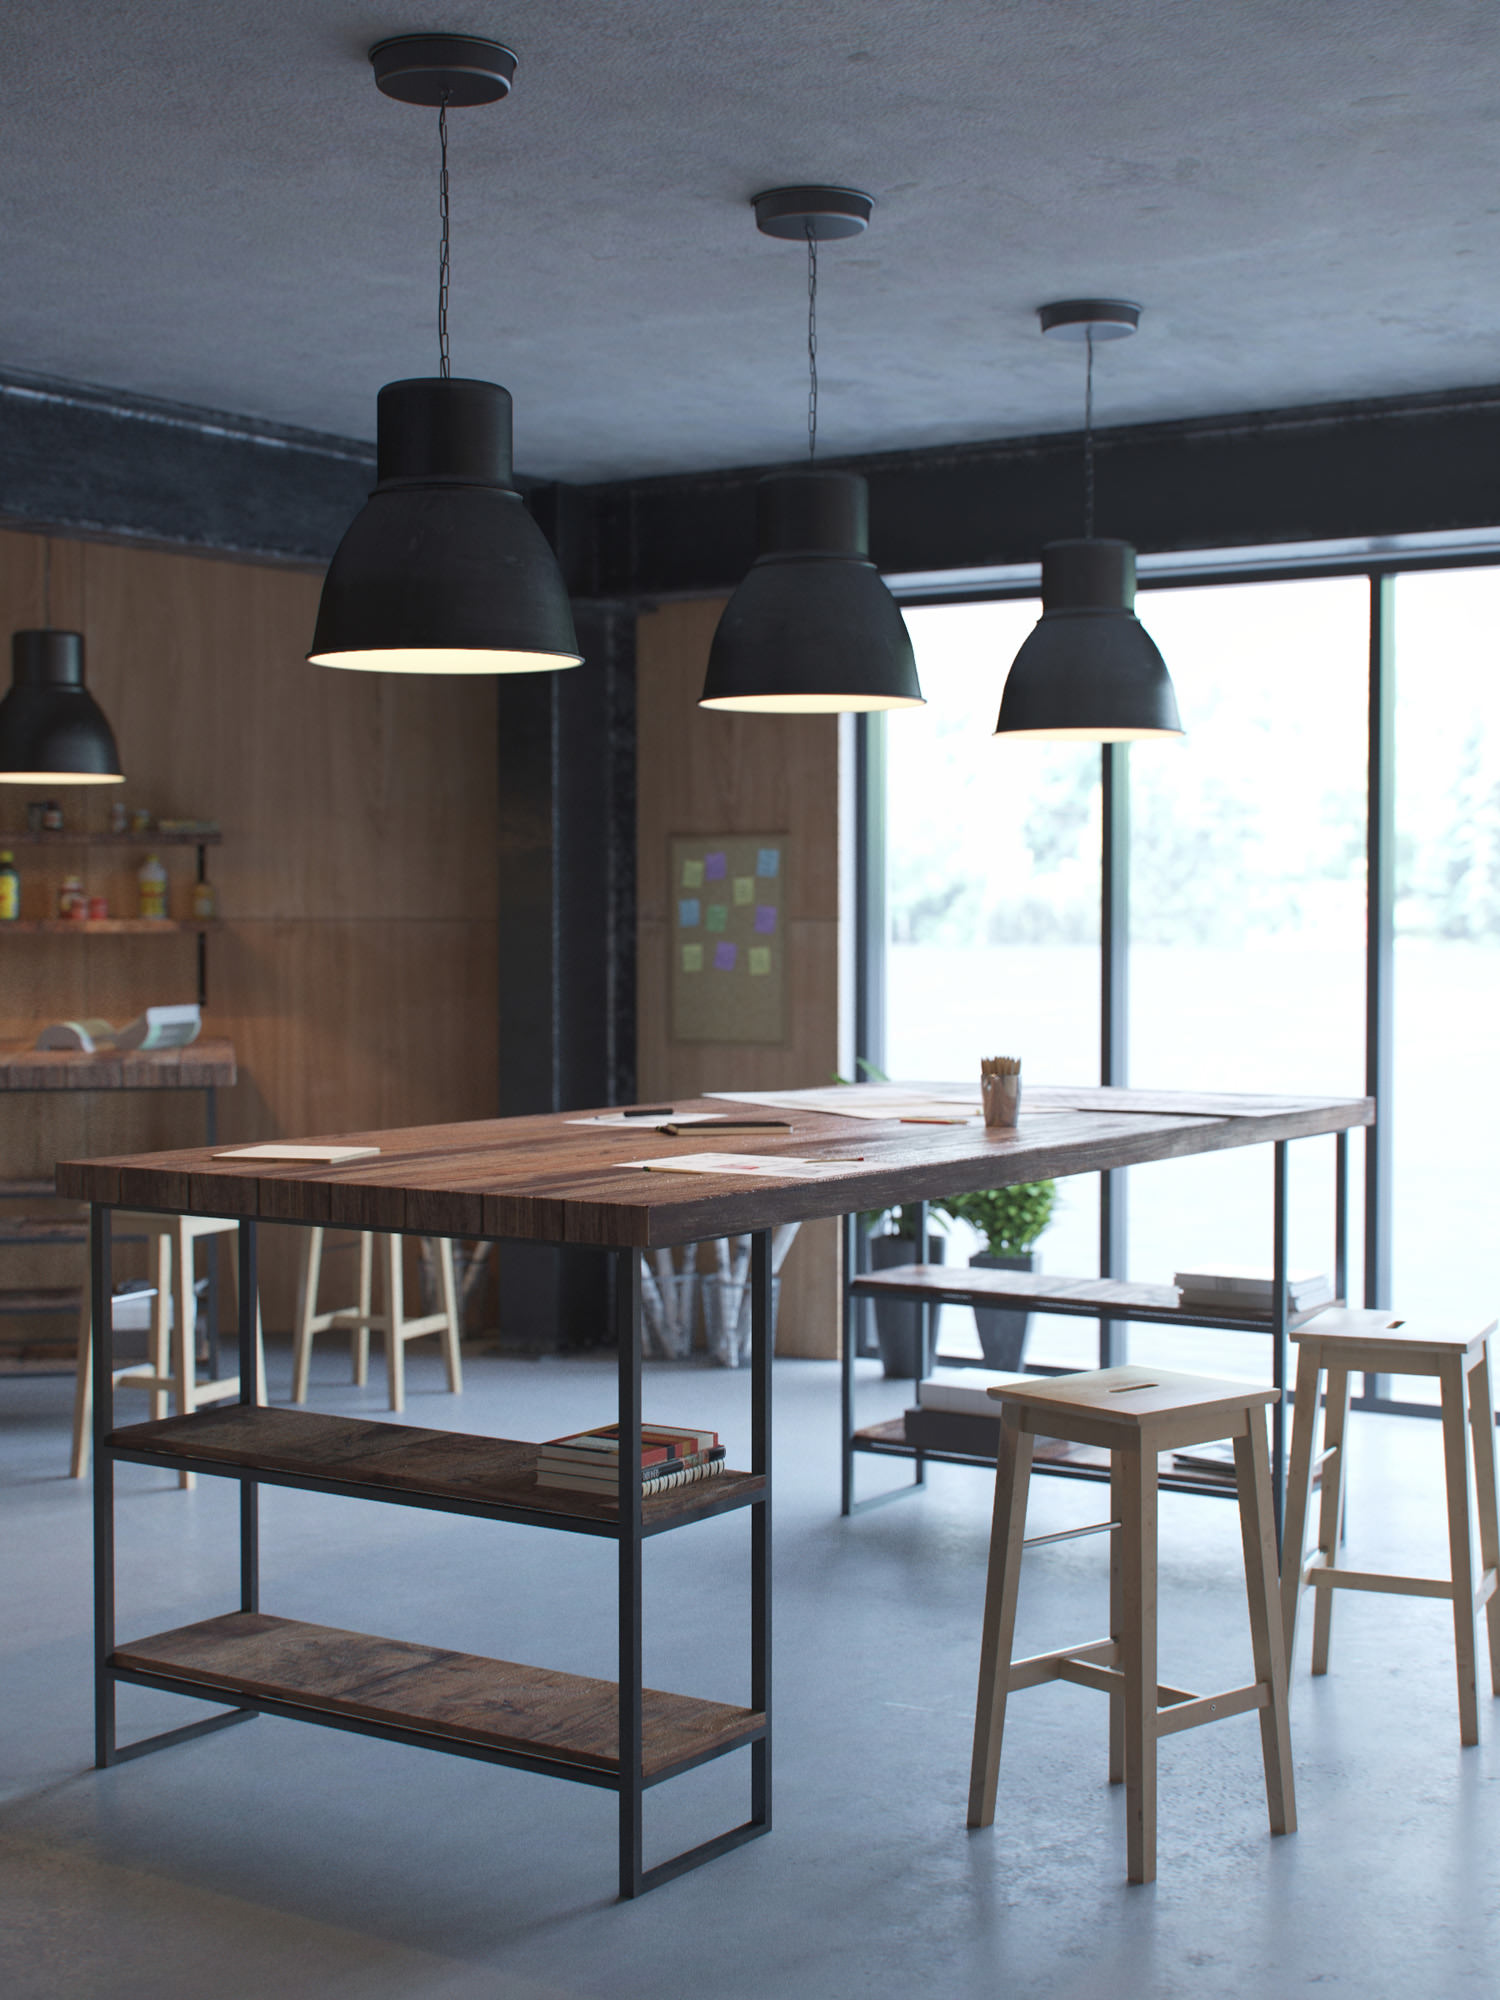 Photorealistic interior visualization of a lounge area in the factory workshop with wooden tables, bar stools and hanging lamps